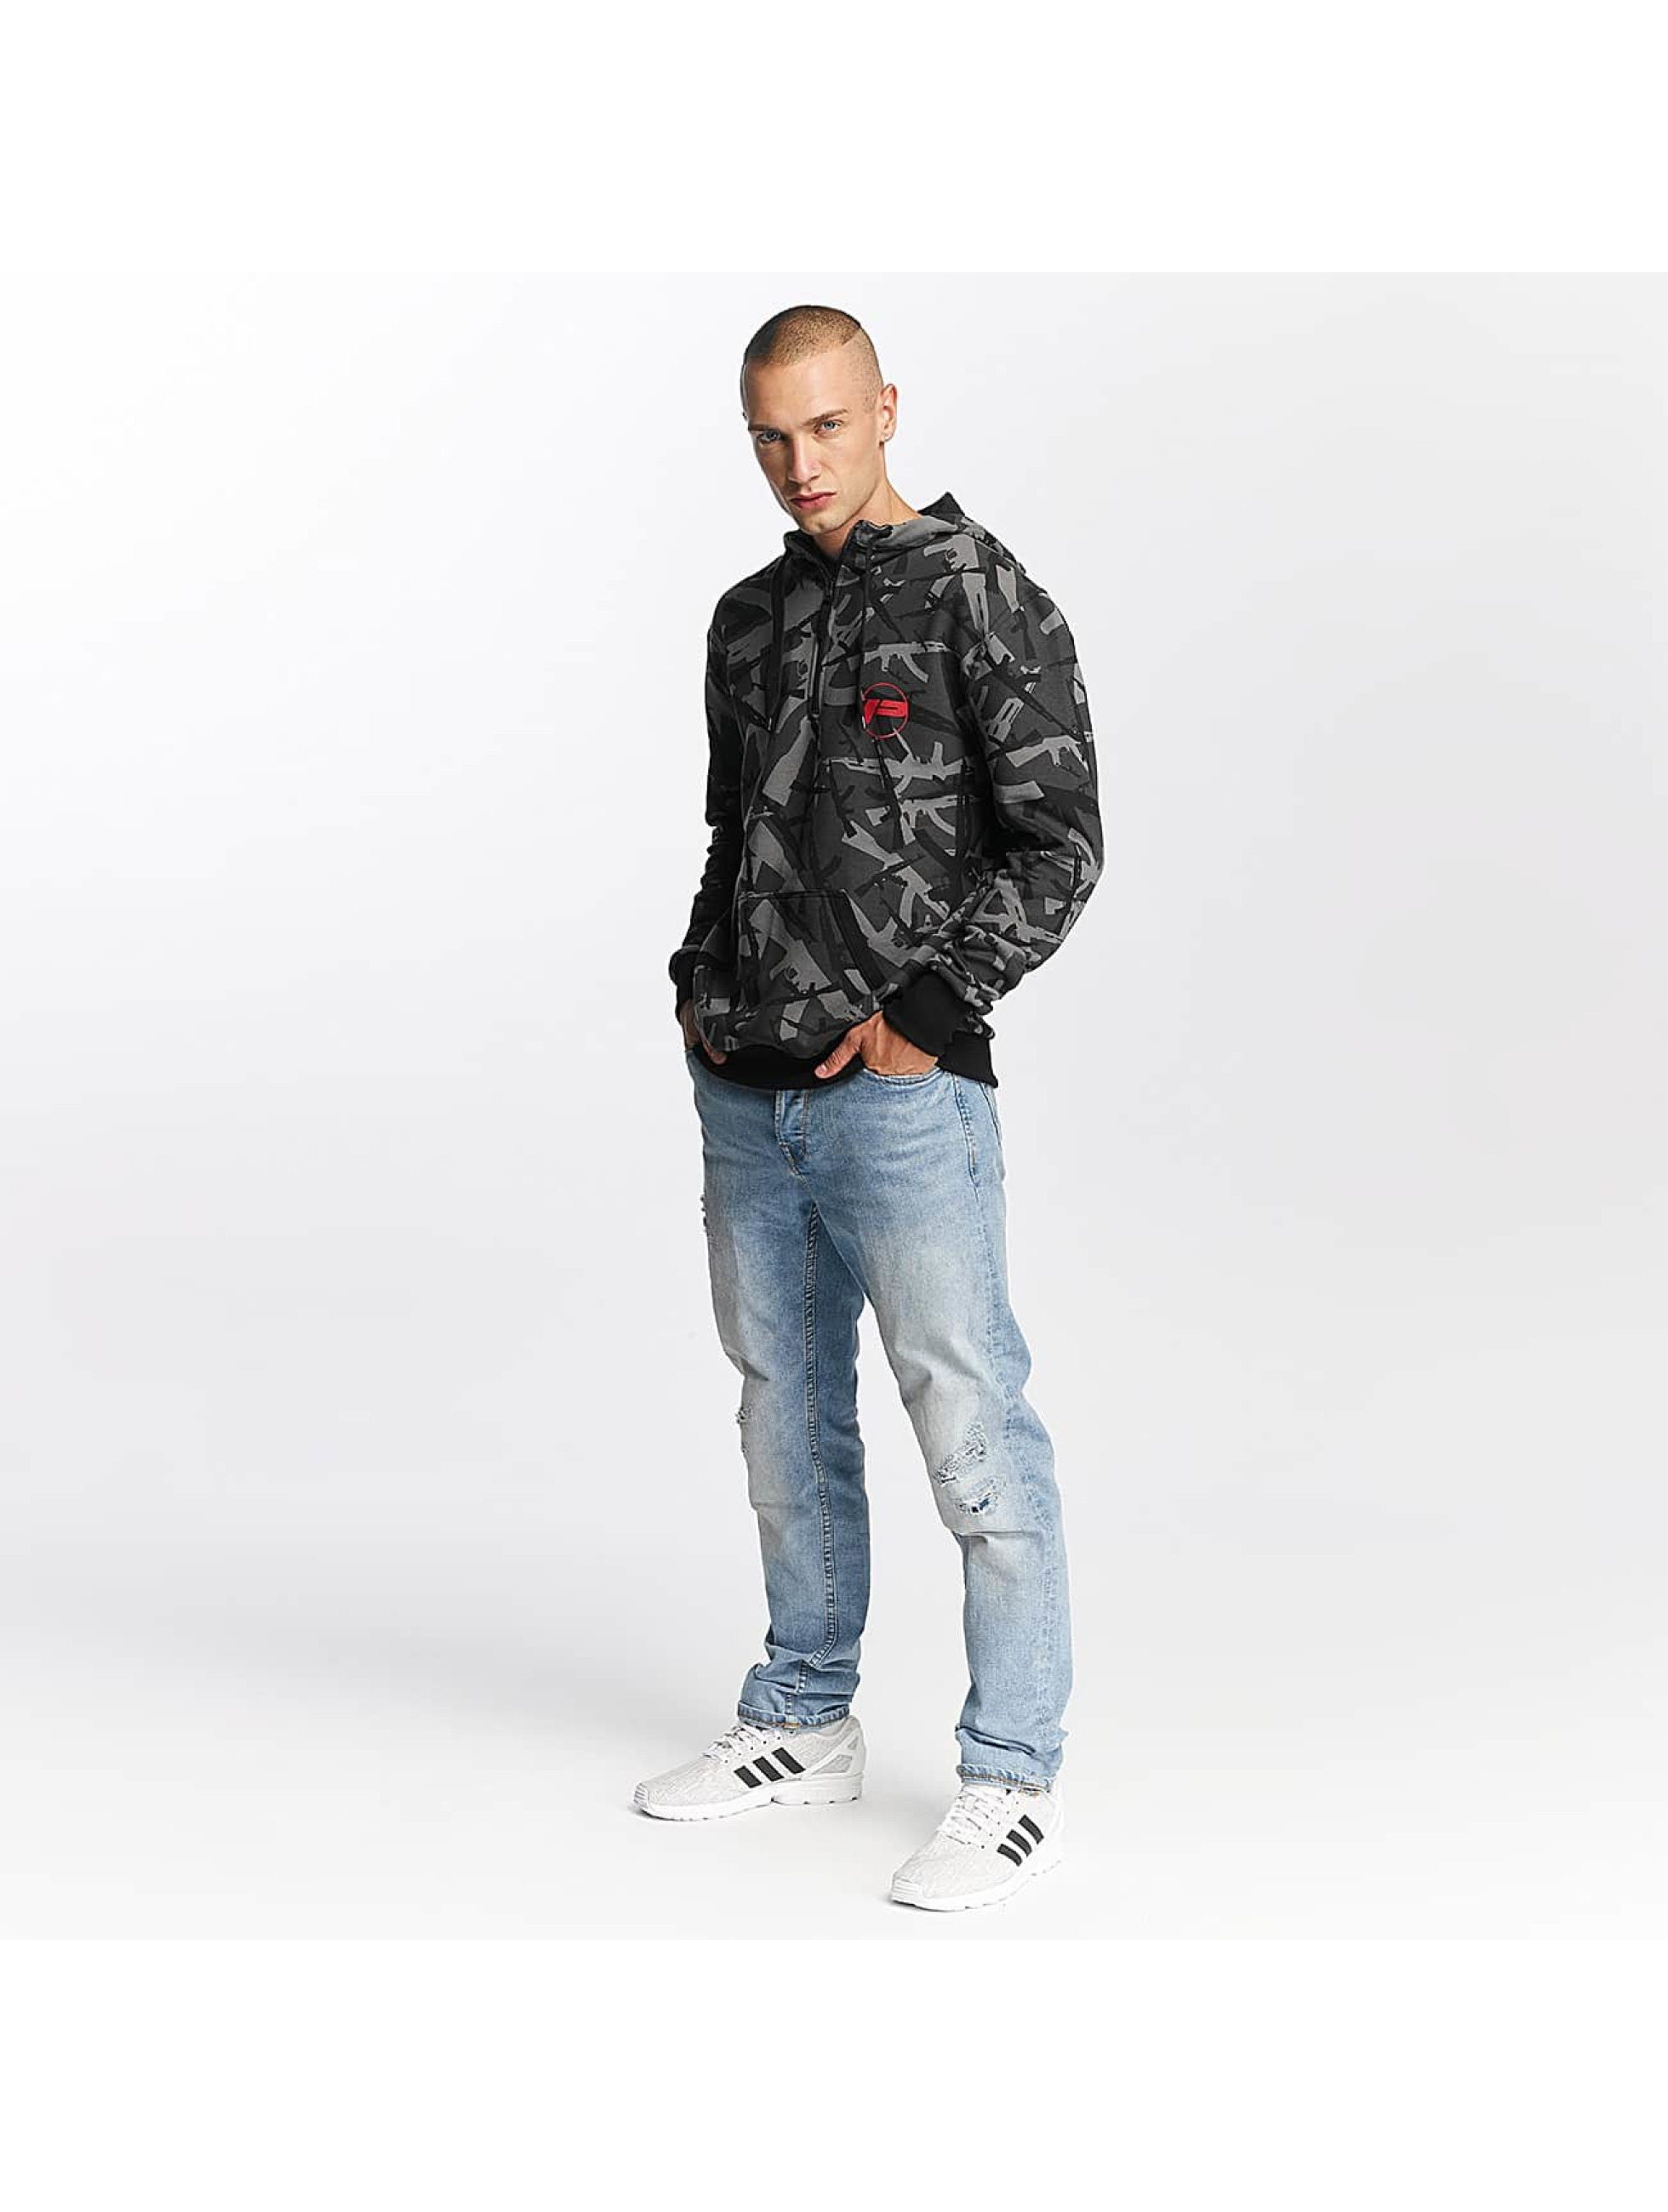 Pusher Apparel Hoodies AK Camo kamufláž